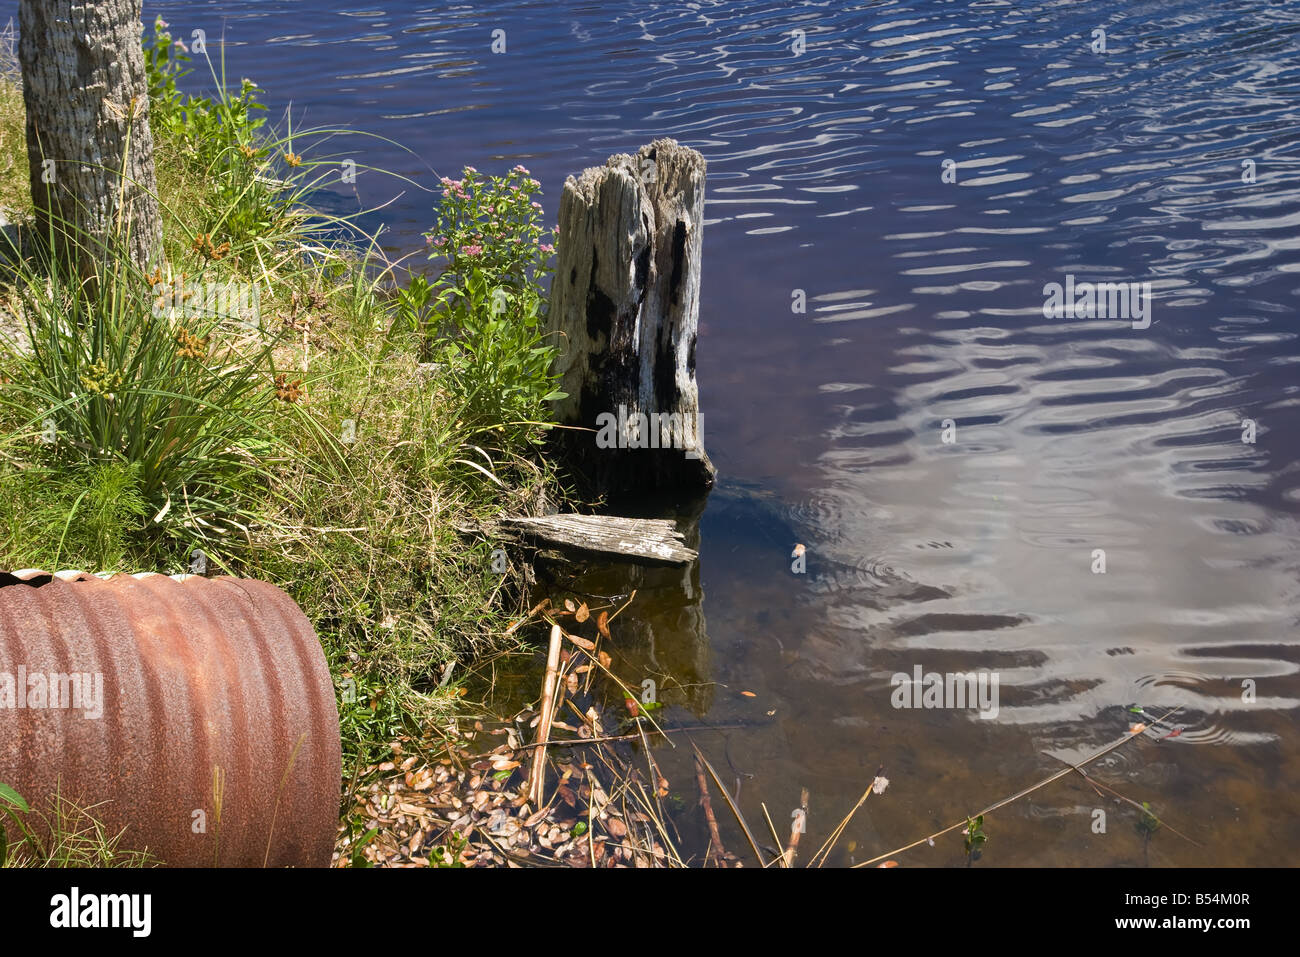 An old stump and a rusty culvert at the edge of a canal, - Stock Image